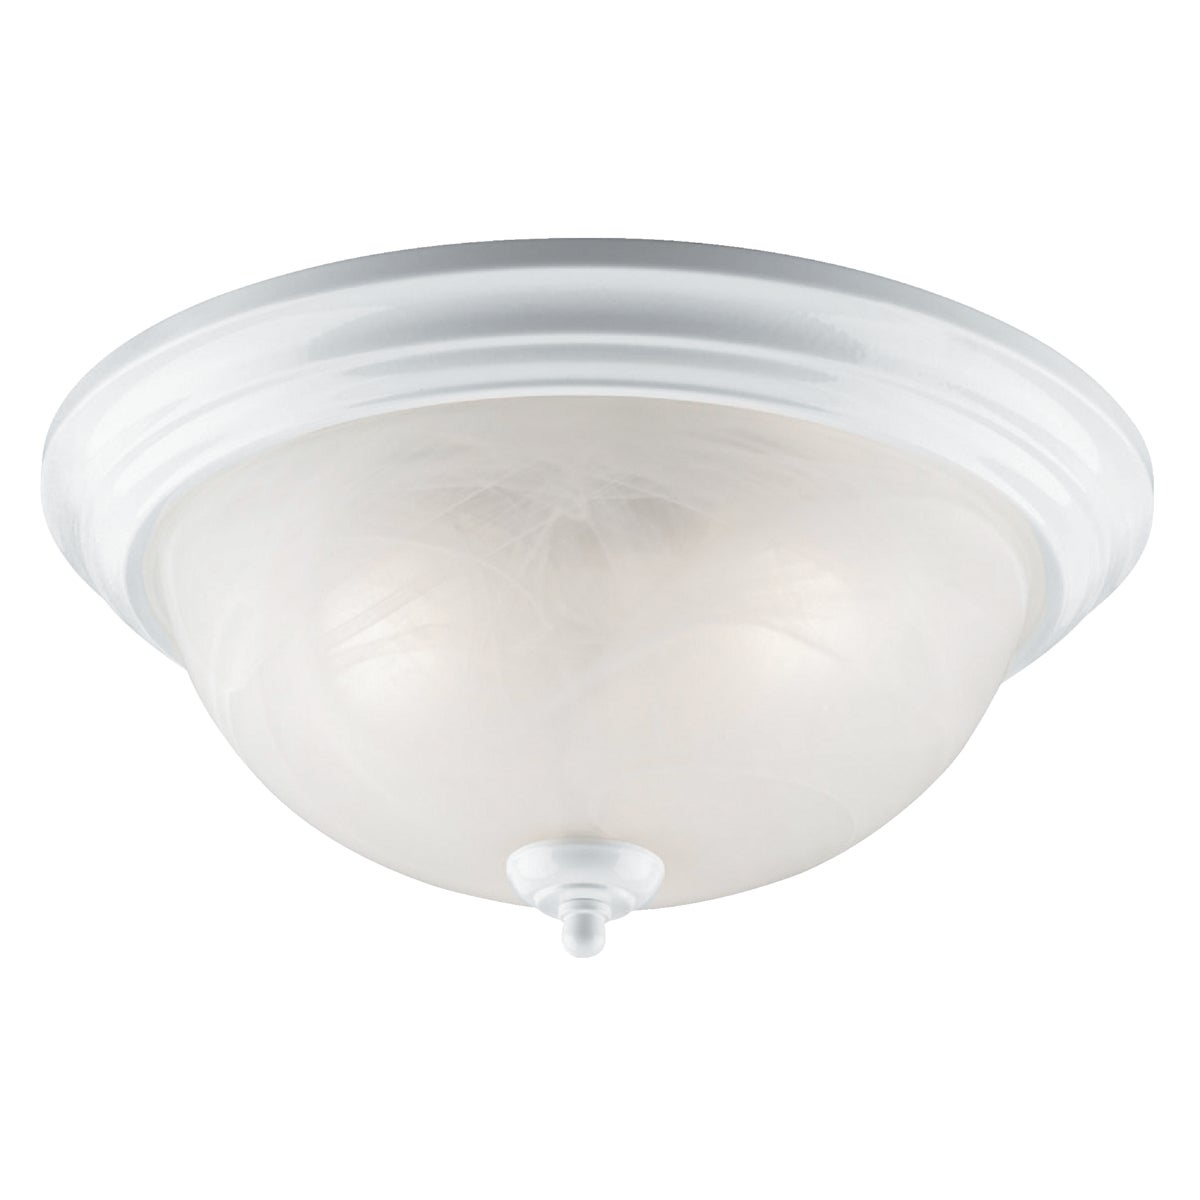 Westinghouse Lighting WHT CEILING FIXTURE 64358